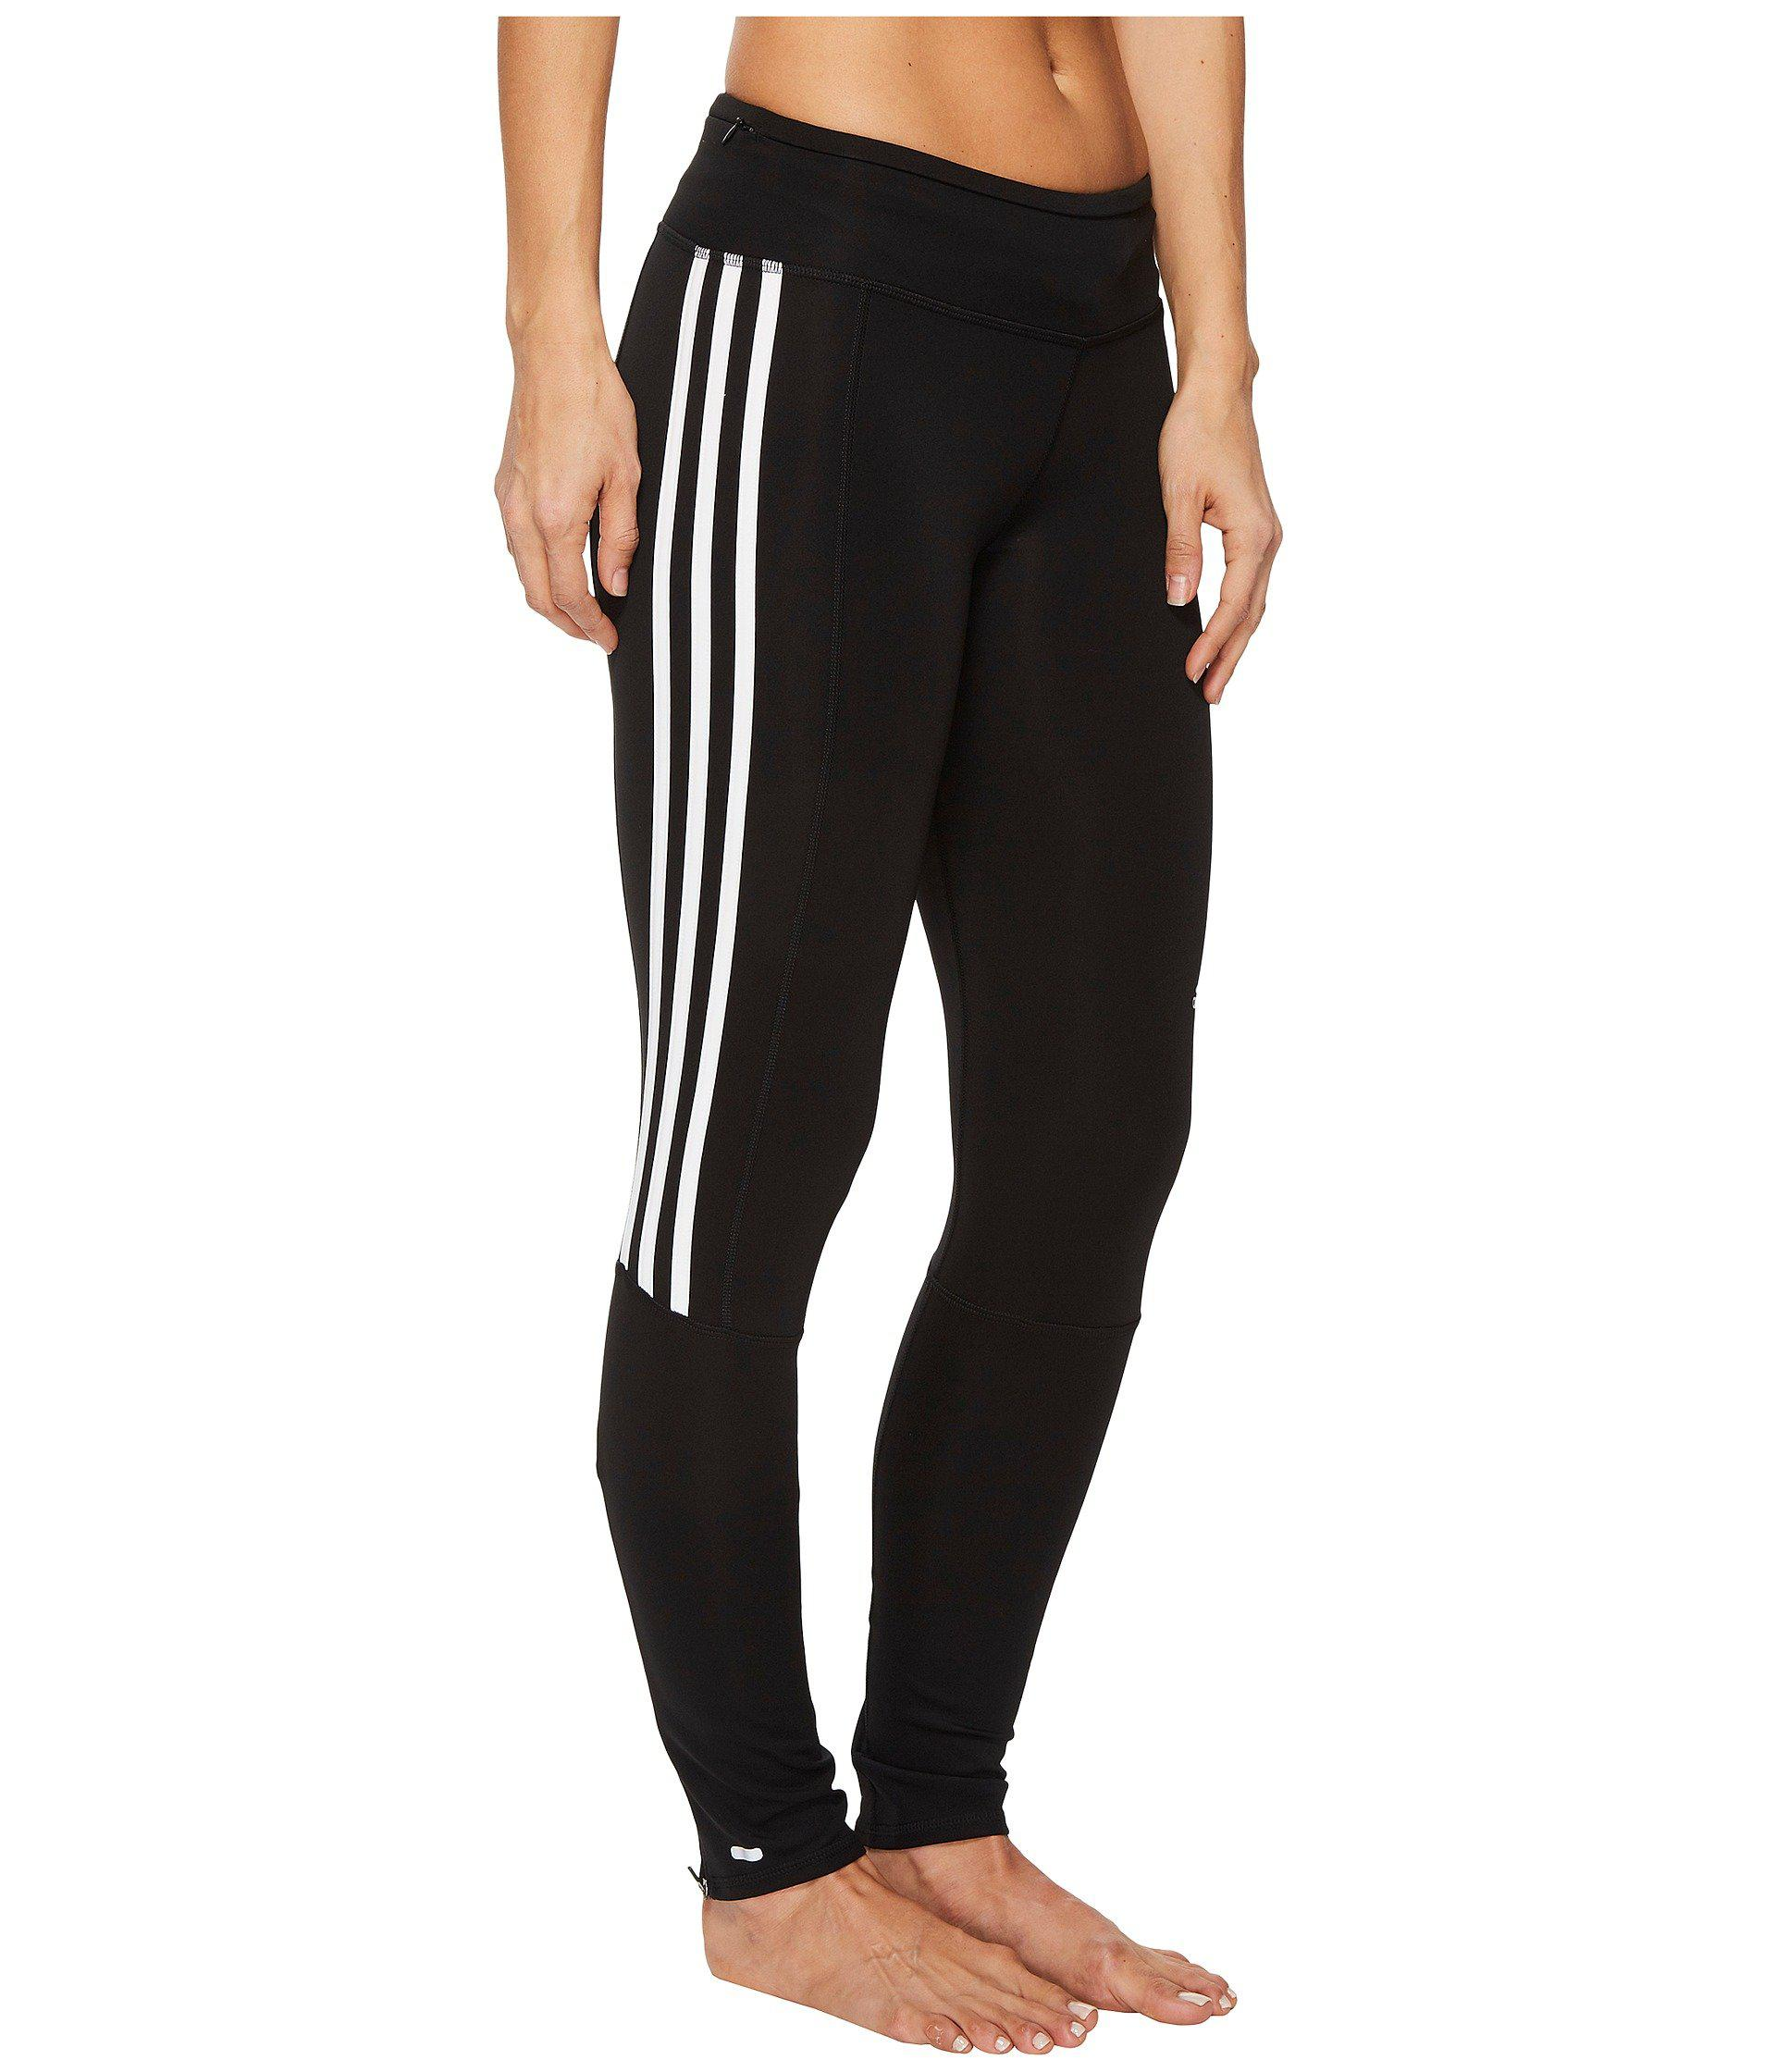 Lyst negro Adidas rayas Response Tights 3 rayas Long Tights en negro 76c6cc3 - generiskmedicin.website